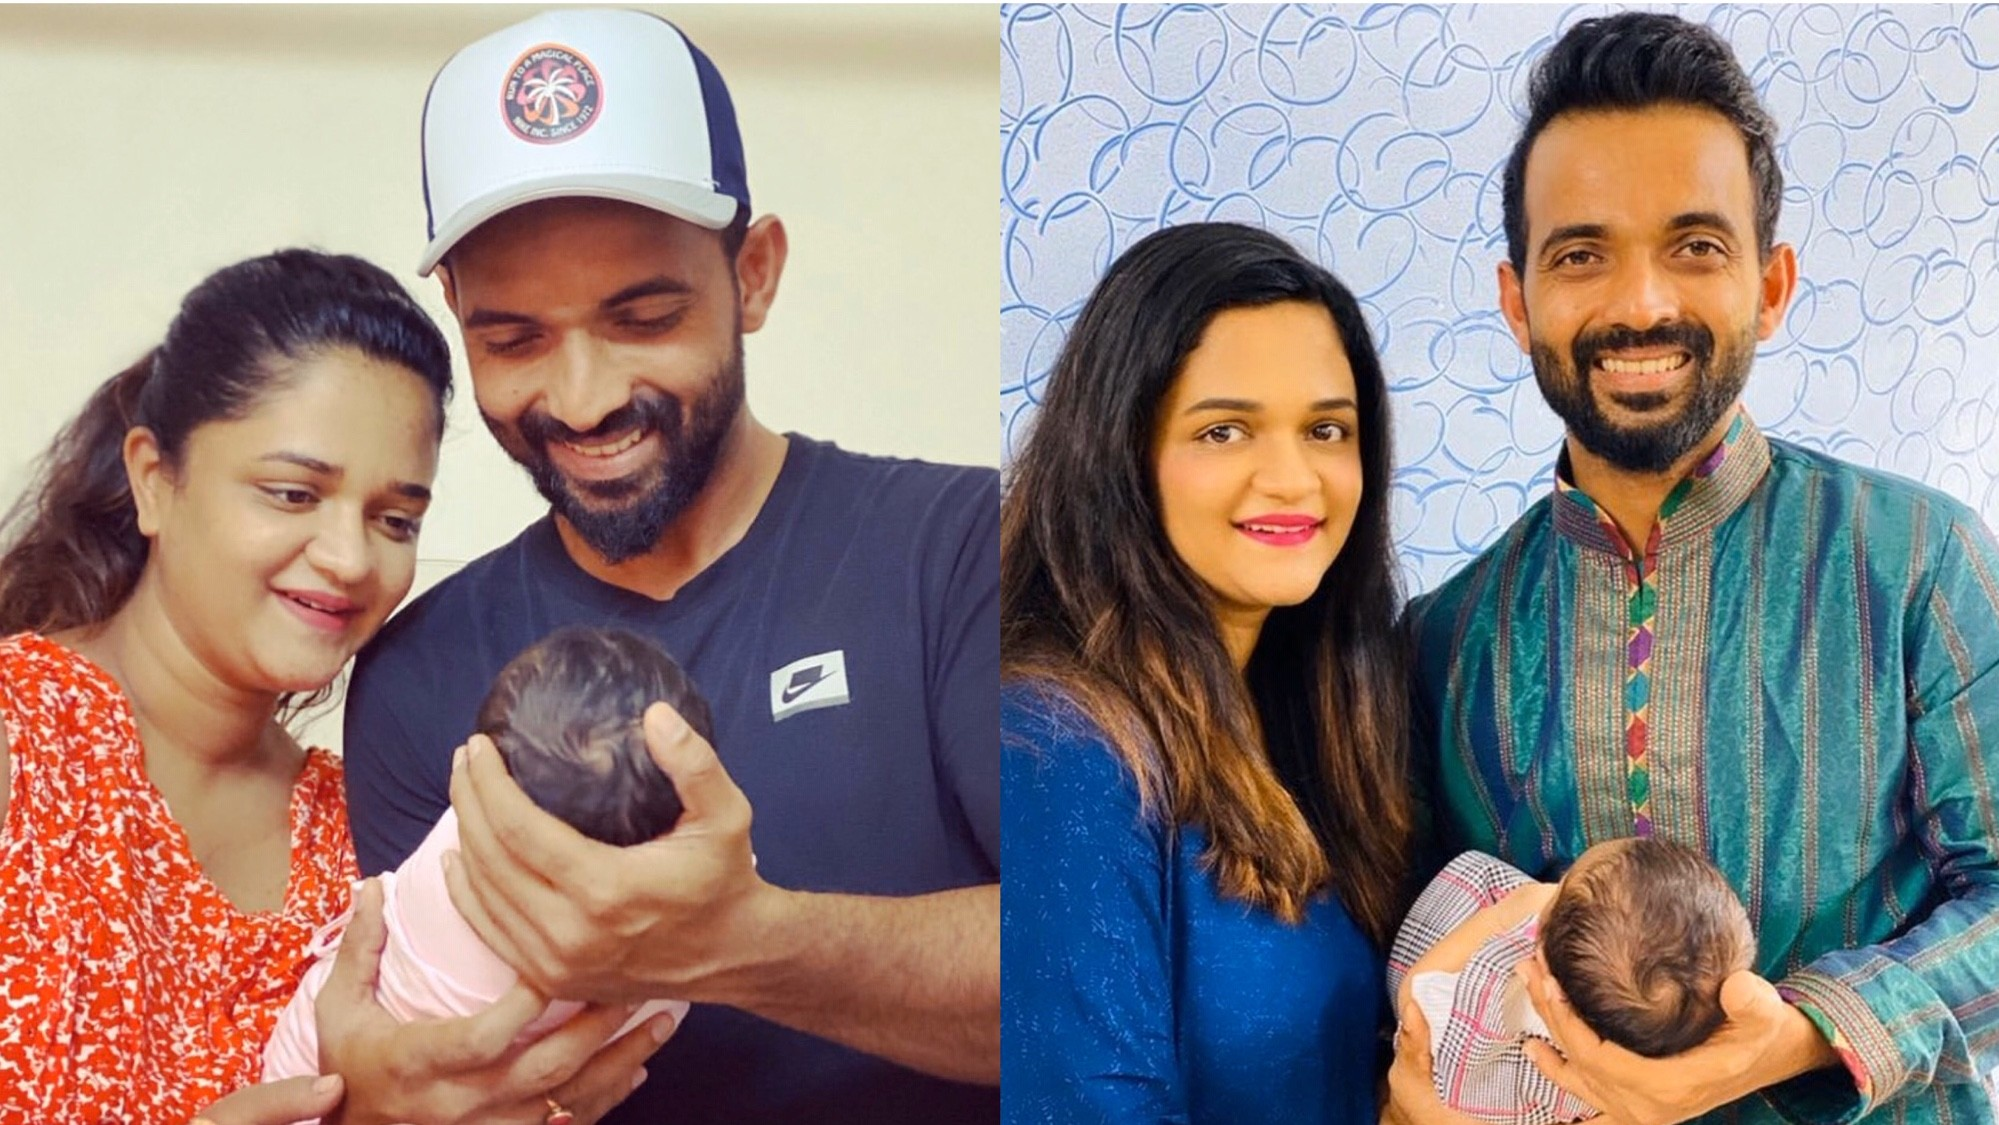 Ajinkya Rahane shares first picture of his newborn daughter Aarya